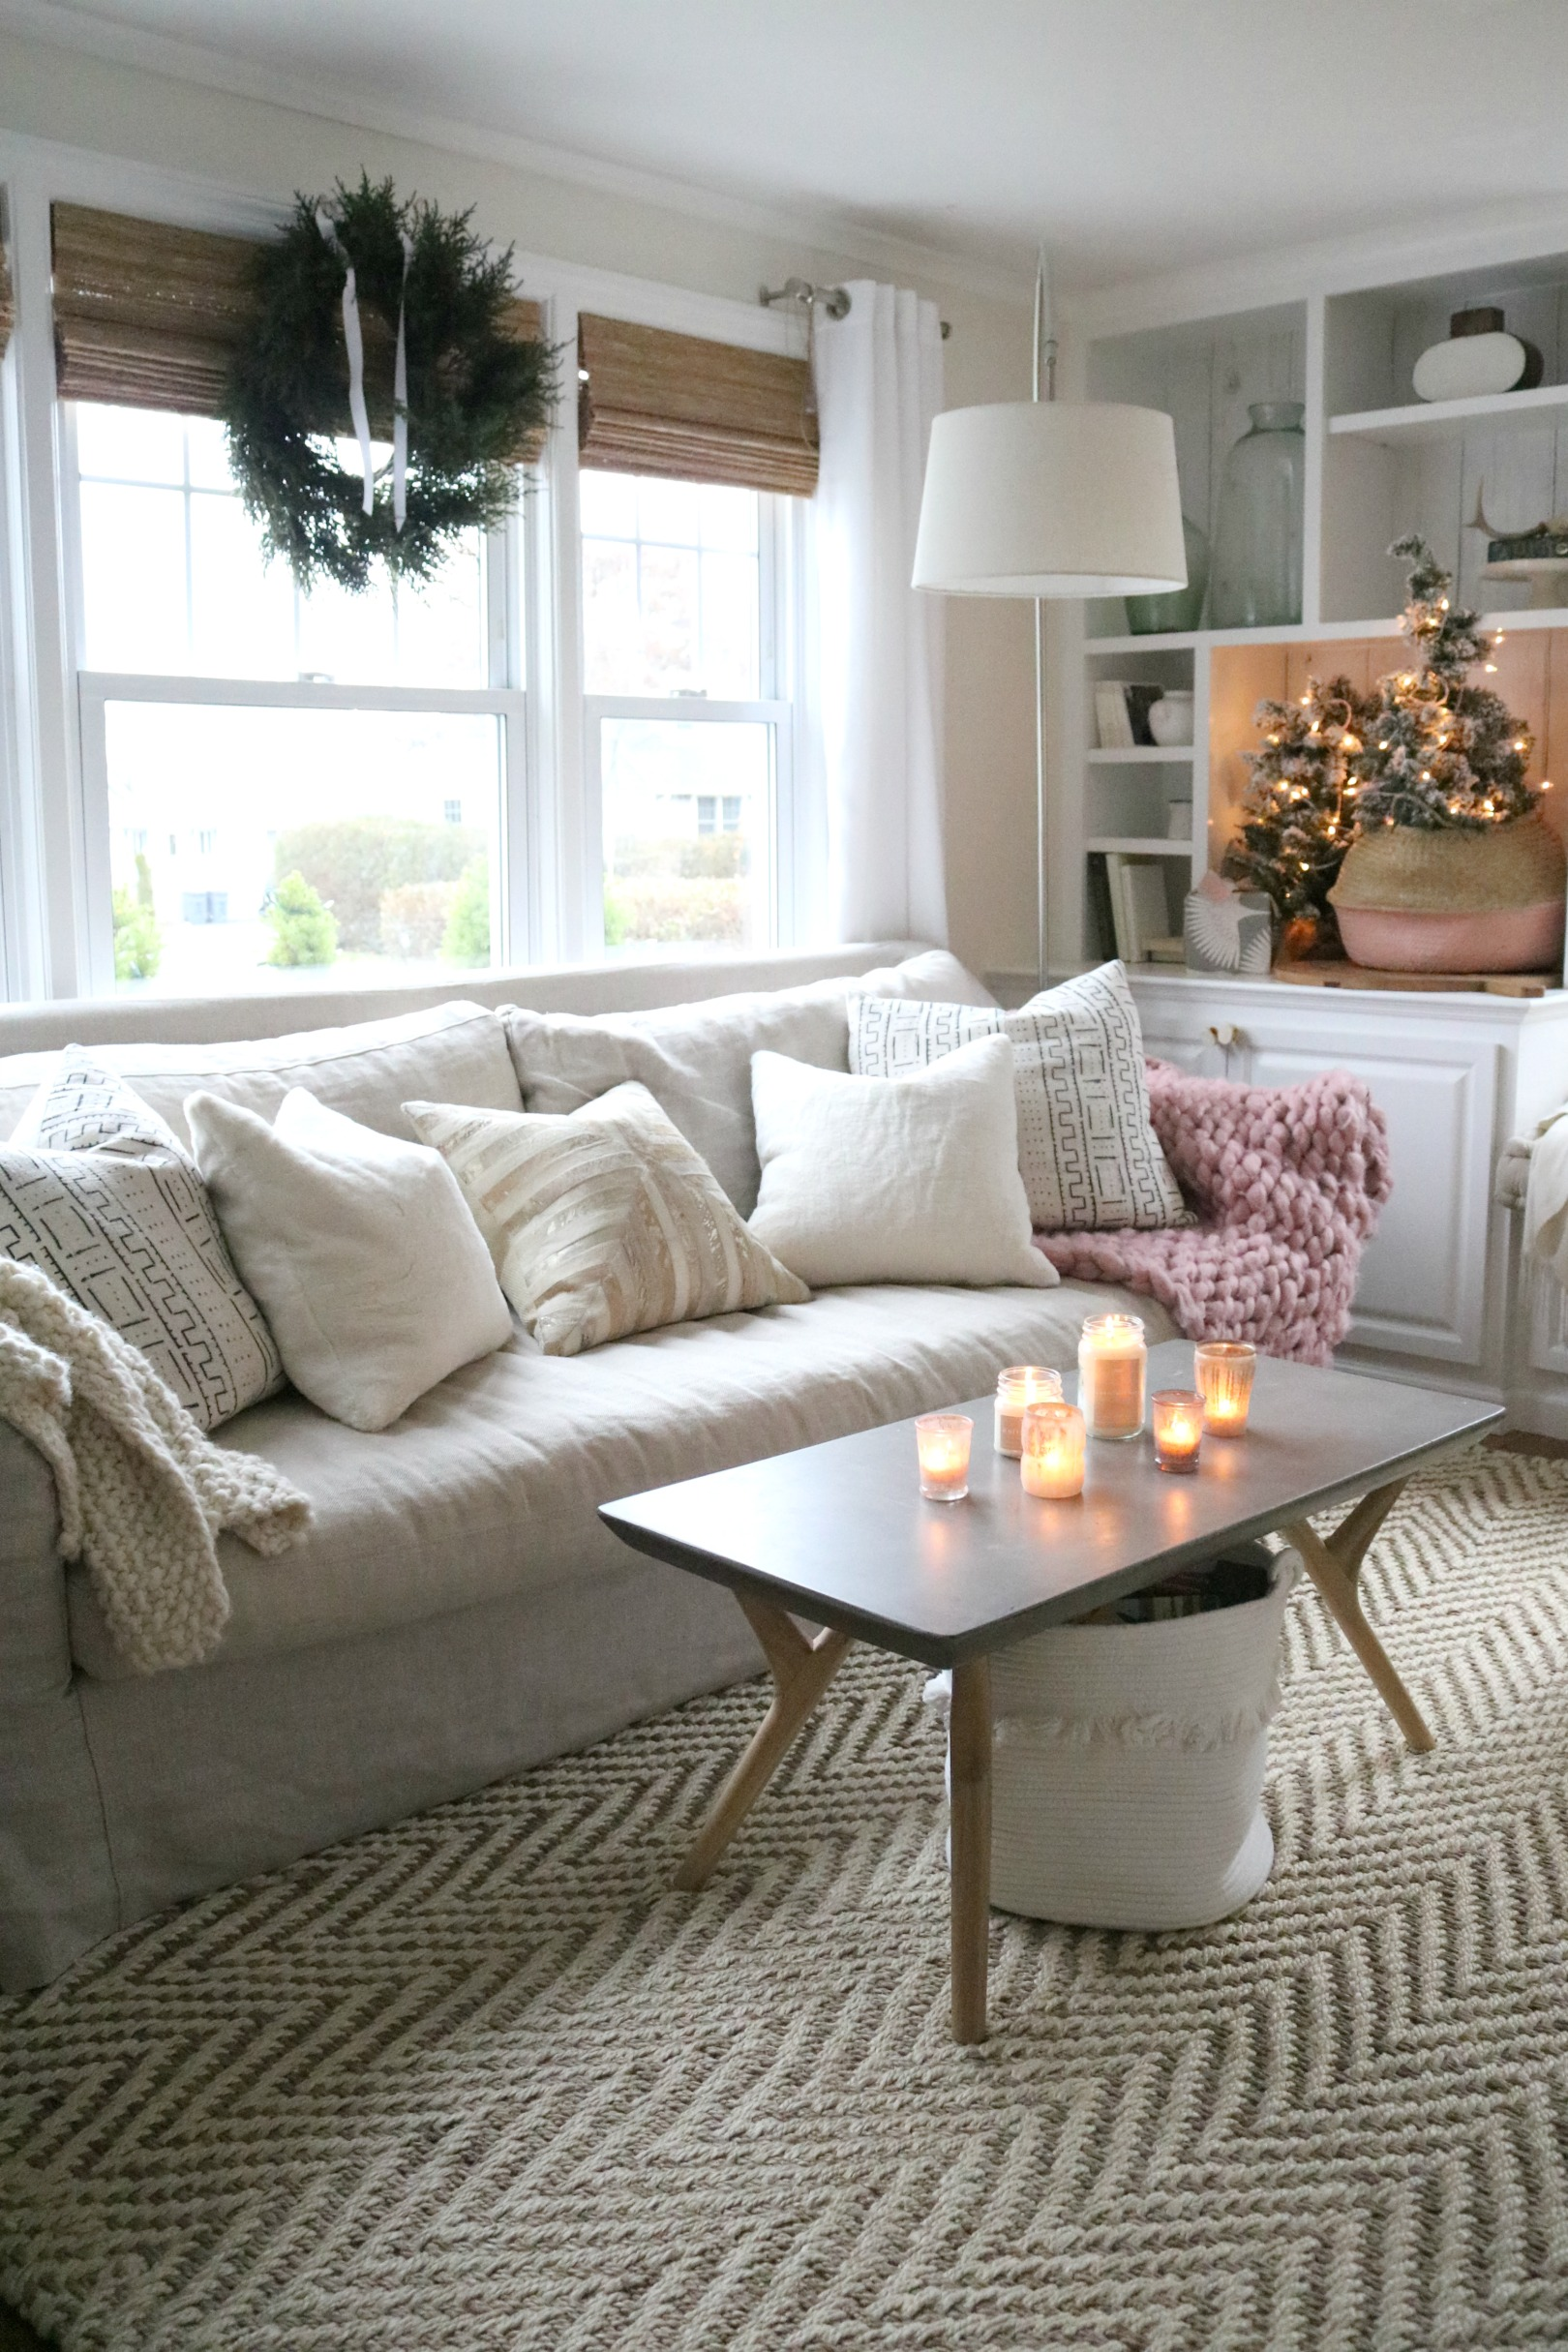 Shop Our Home Nesting With Grace